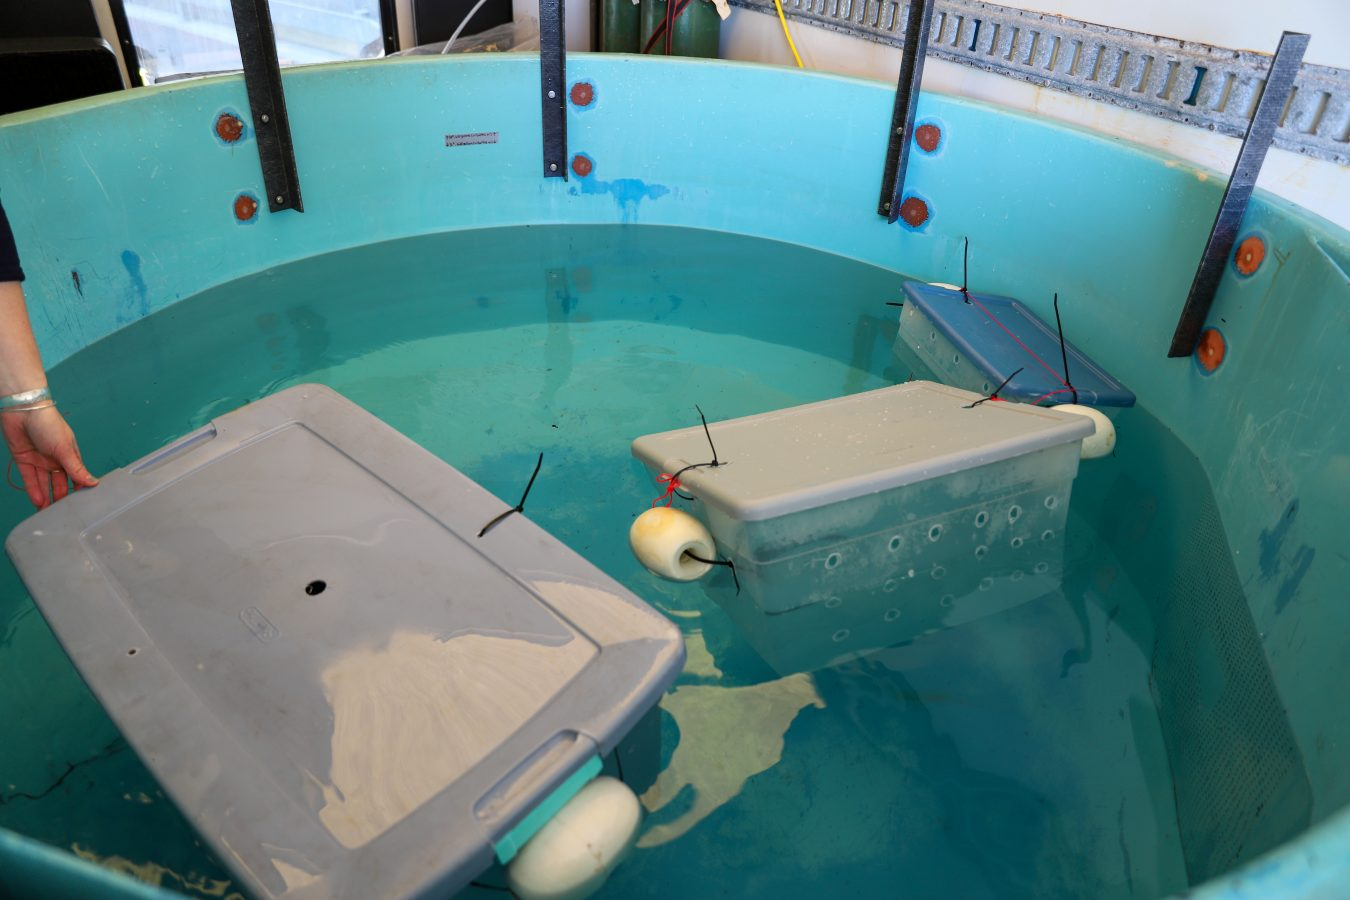 Each fish floats within an individual box inside the holding tank.